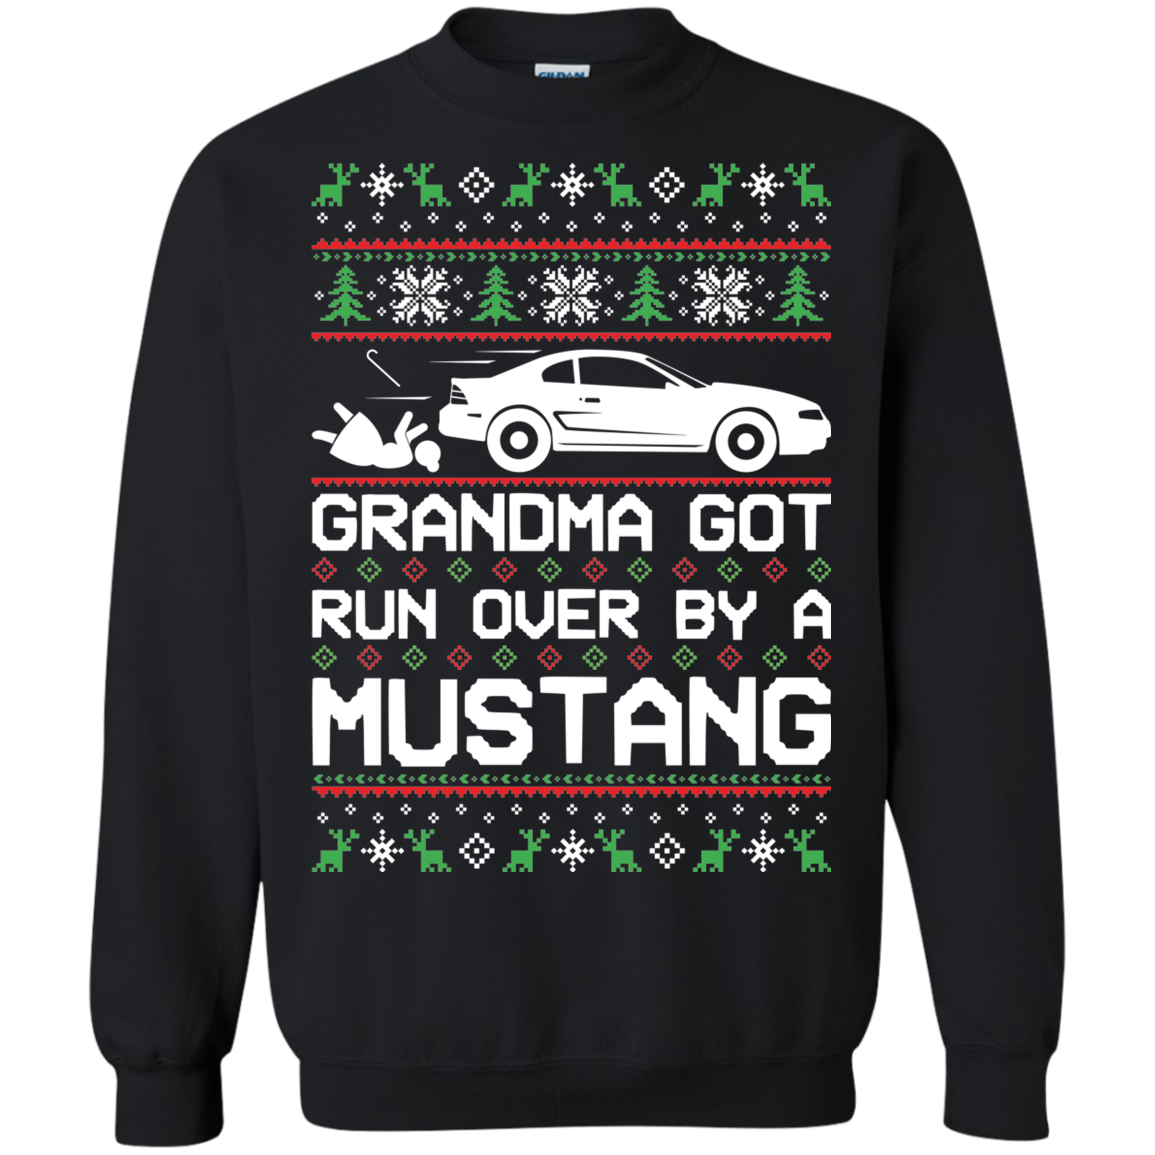 Ford Mustang SN95 Ugly Christmas Grandma Got Run Over by a Mustang T Shirt Pullover Sweatshirt  1994 1995 1996 1997 1998